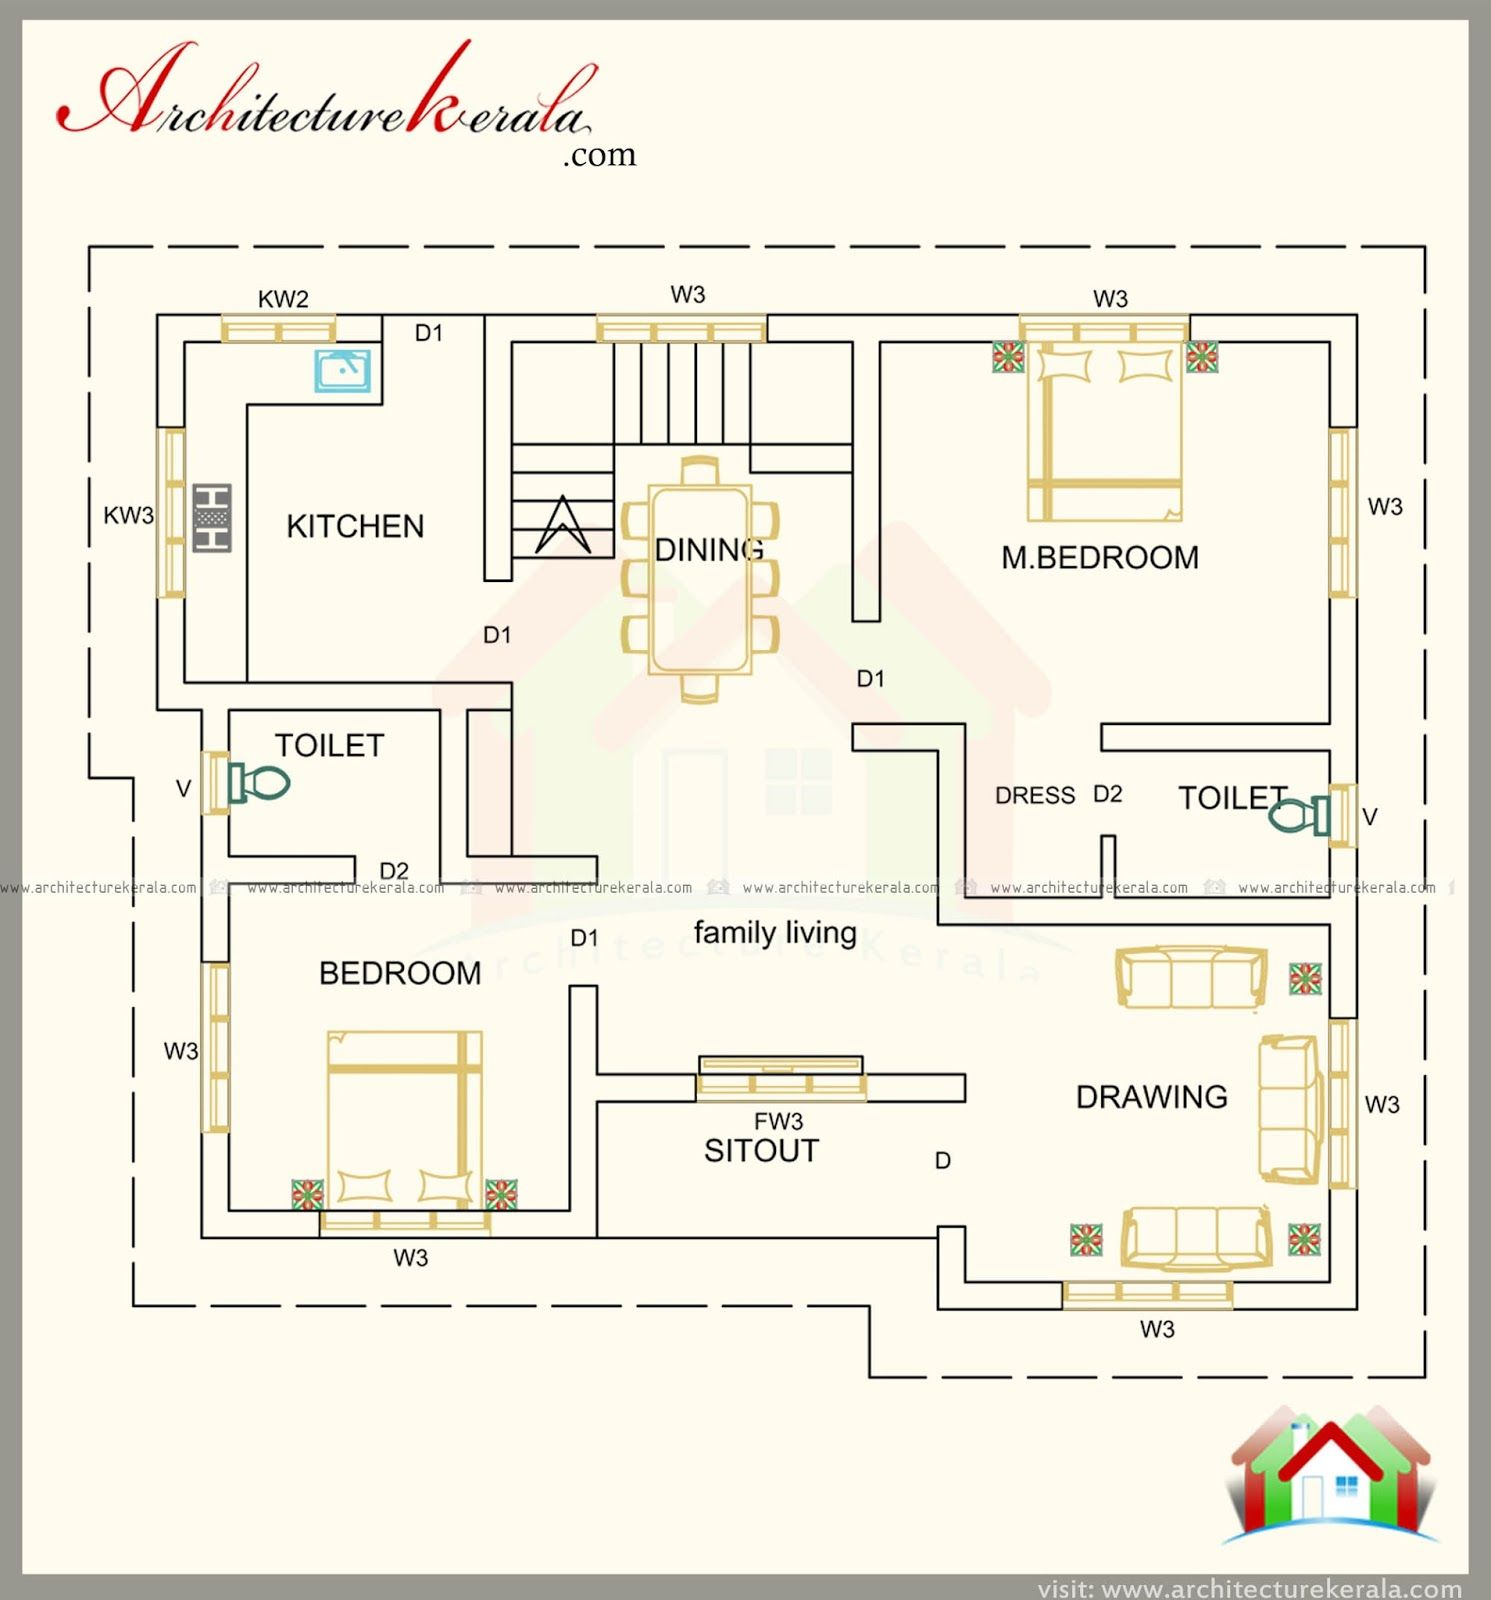 Sq ft house plan and contemporary style elevation separate drawing dining three bedrooms with attached bathroom also stylish new bedroom kerala home design floor rh pinterest